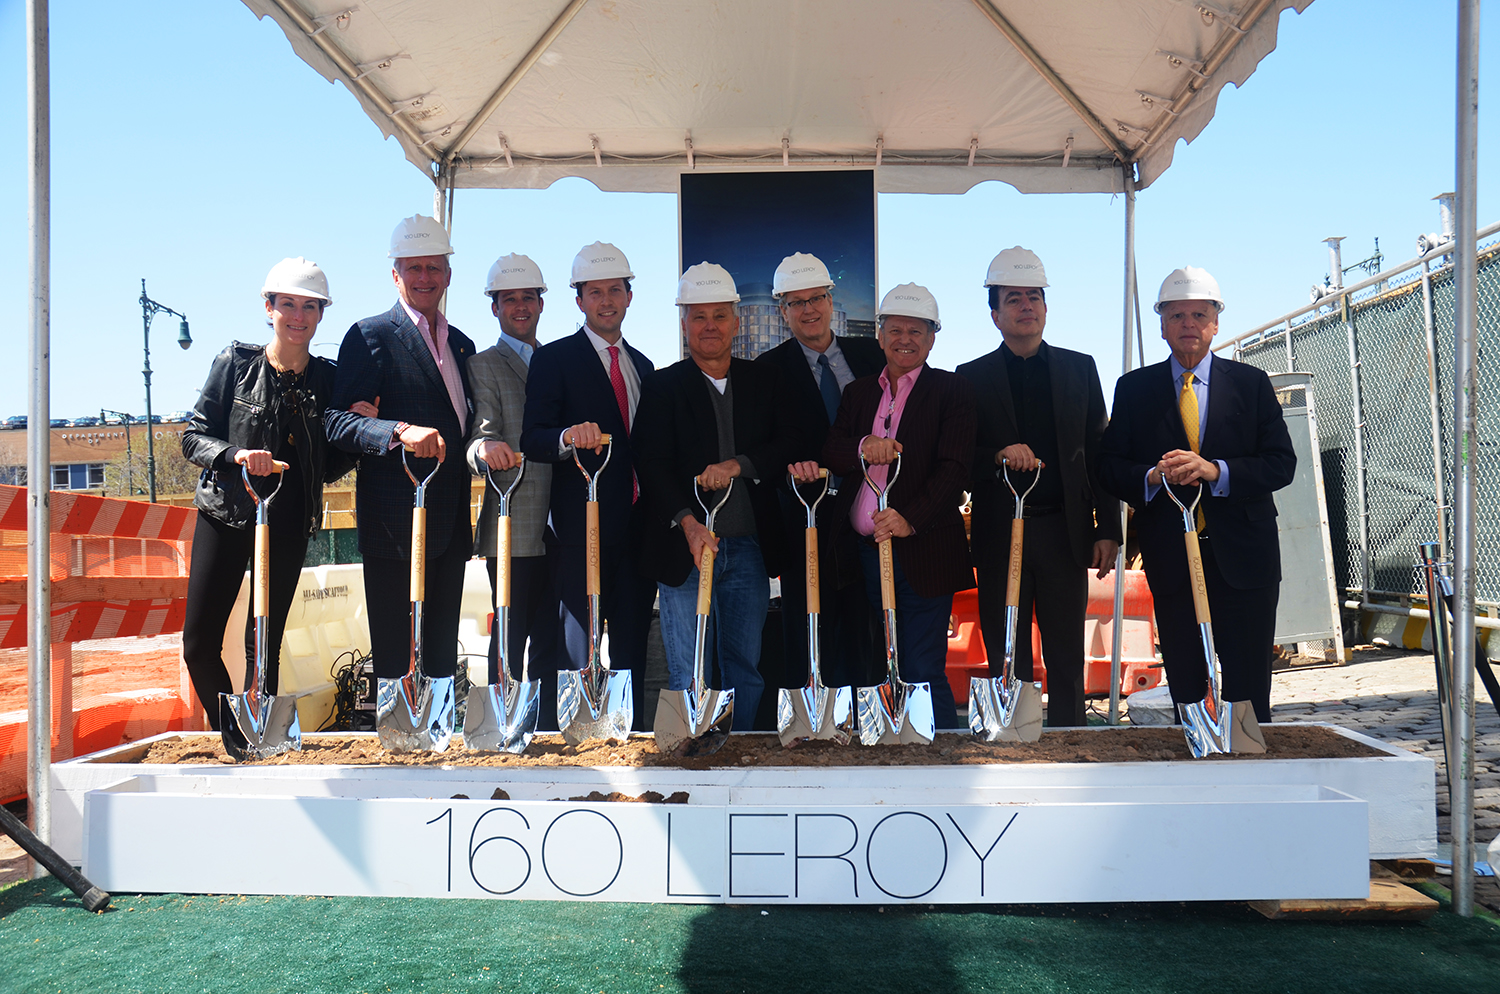 Groundbreaking for 160 Leroy Street. All photos by the author